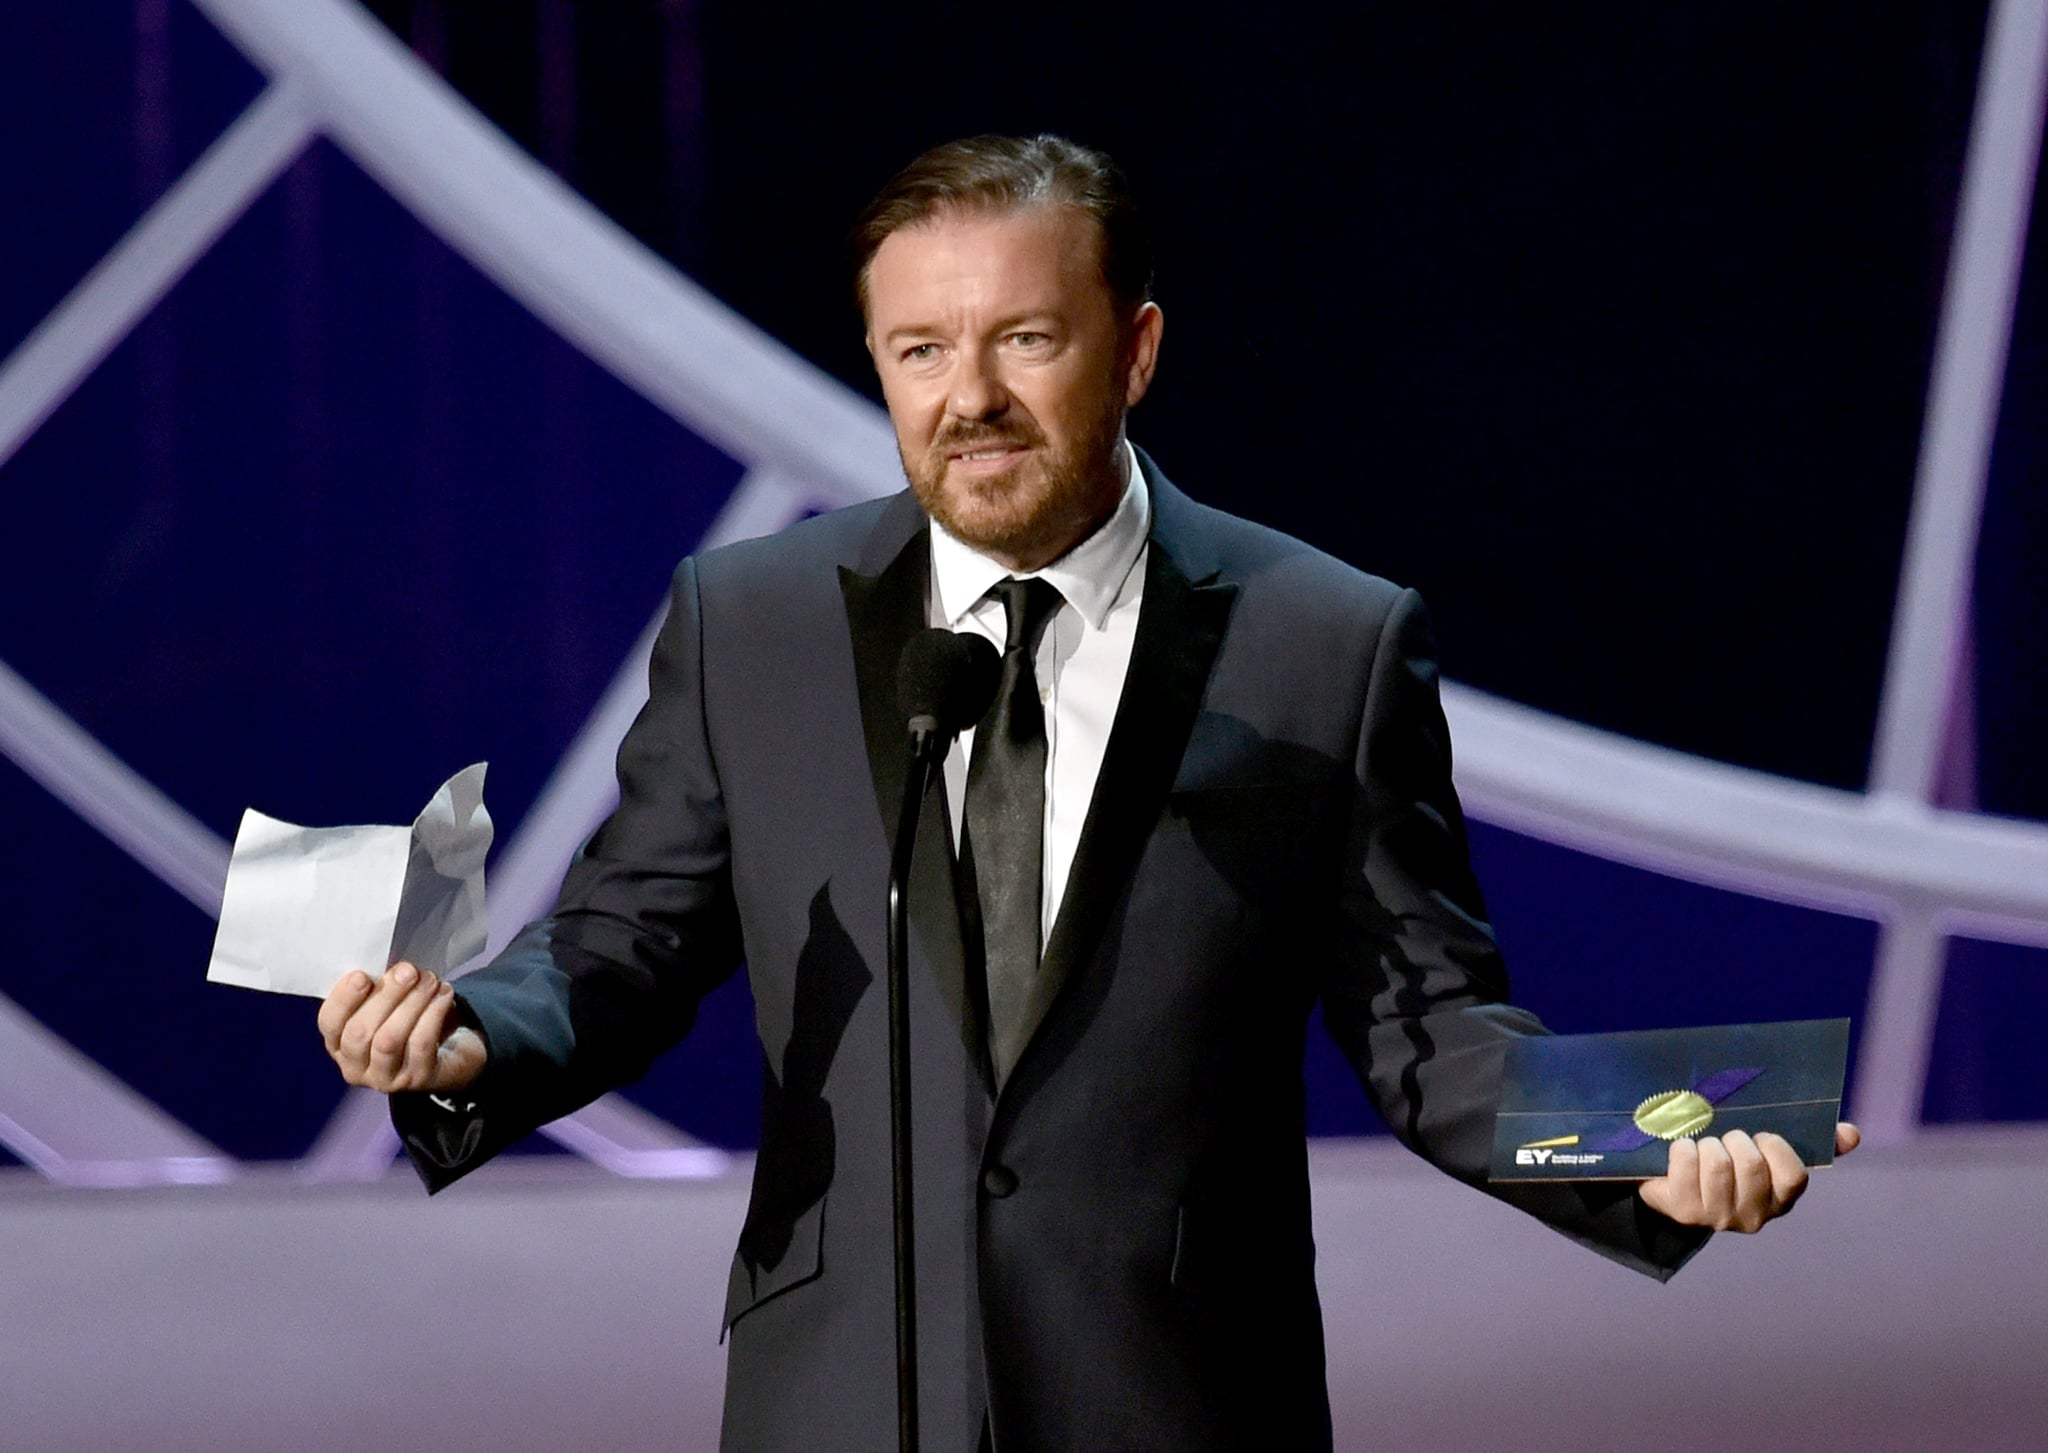 Ricky Gervais's Never-Used Acceptance Speech